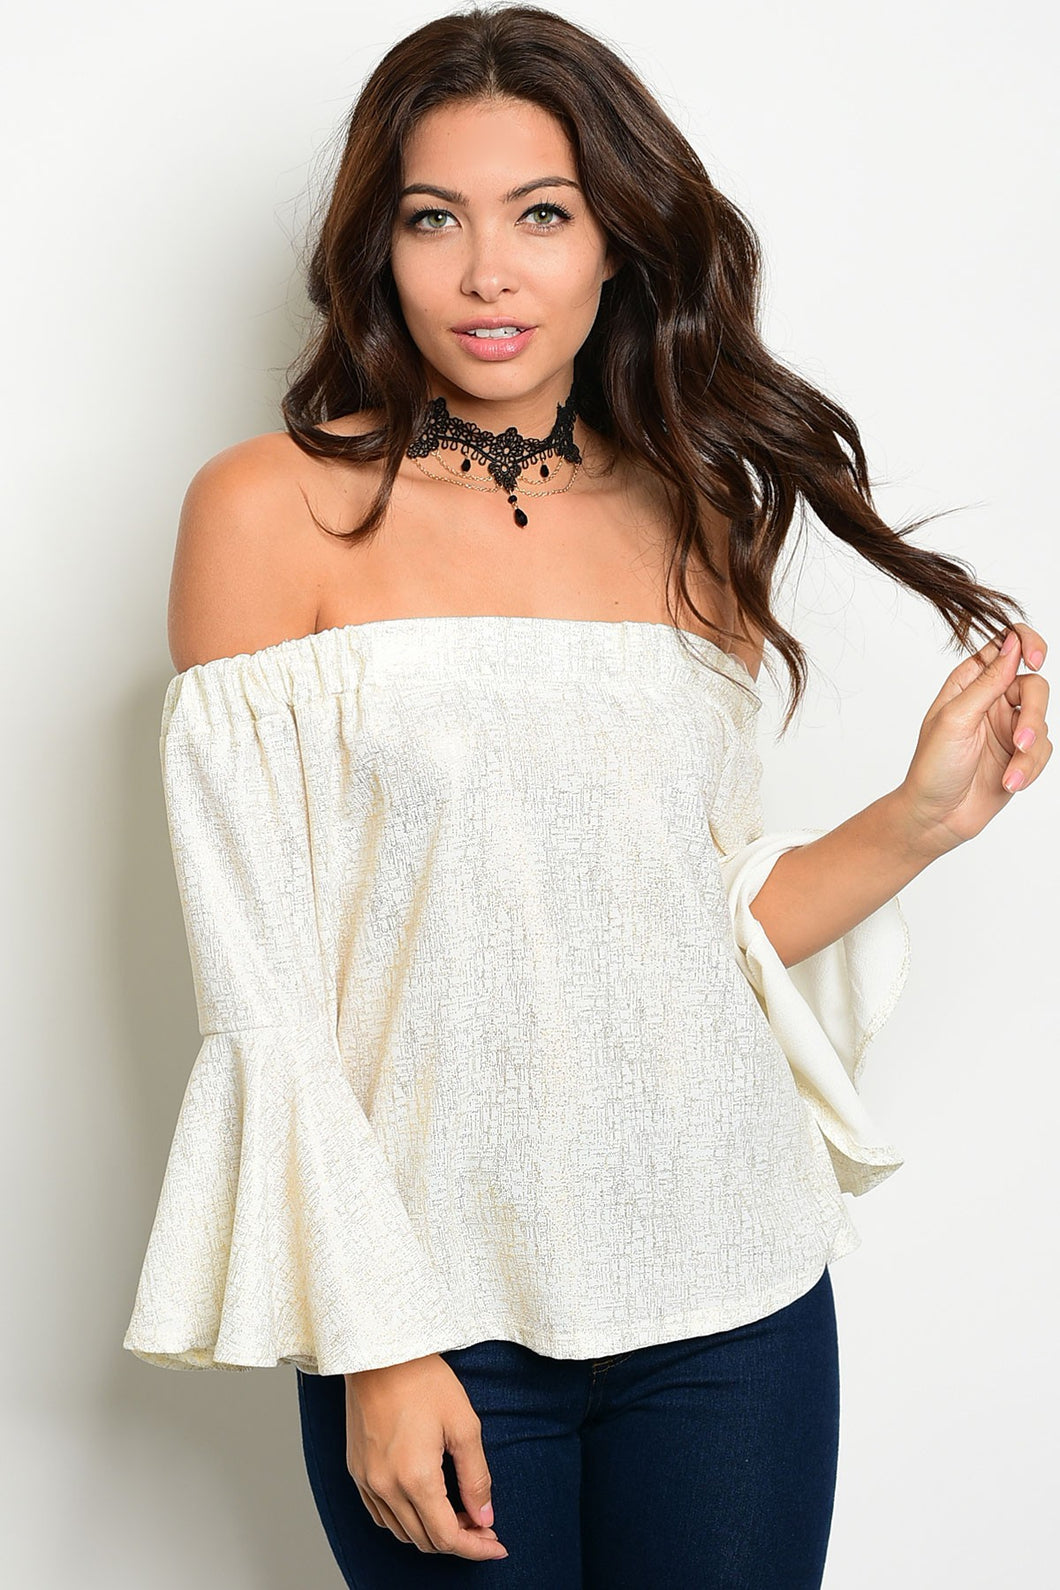 Nylon Apparel White Gold Off Shoulder Top